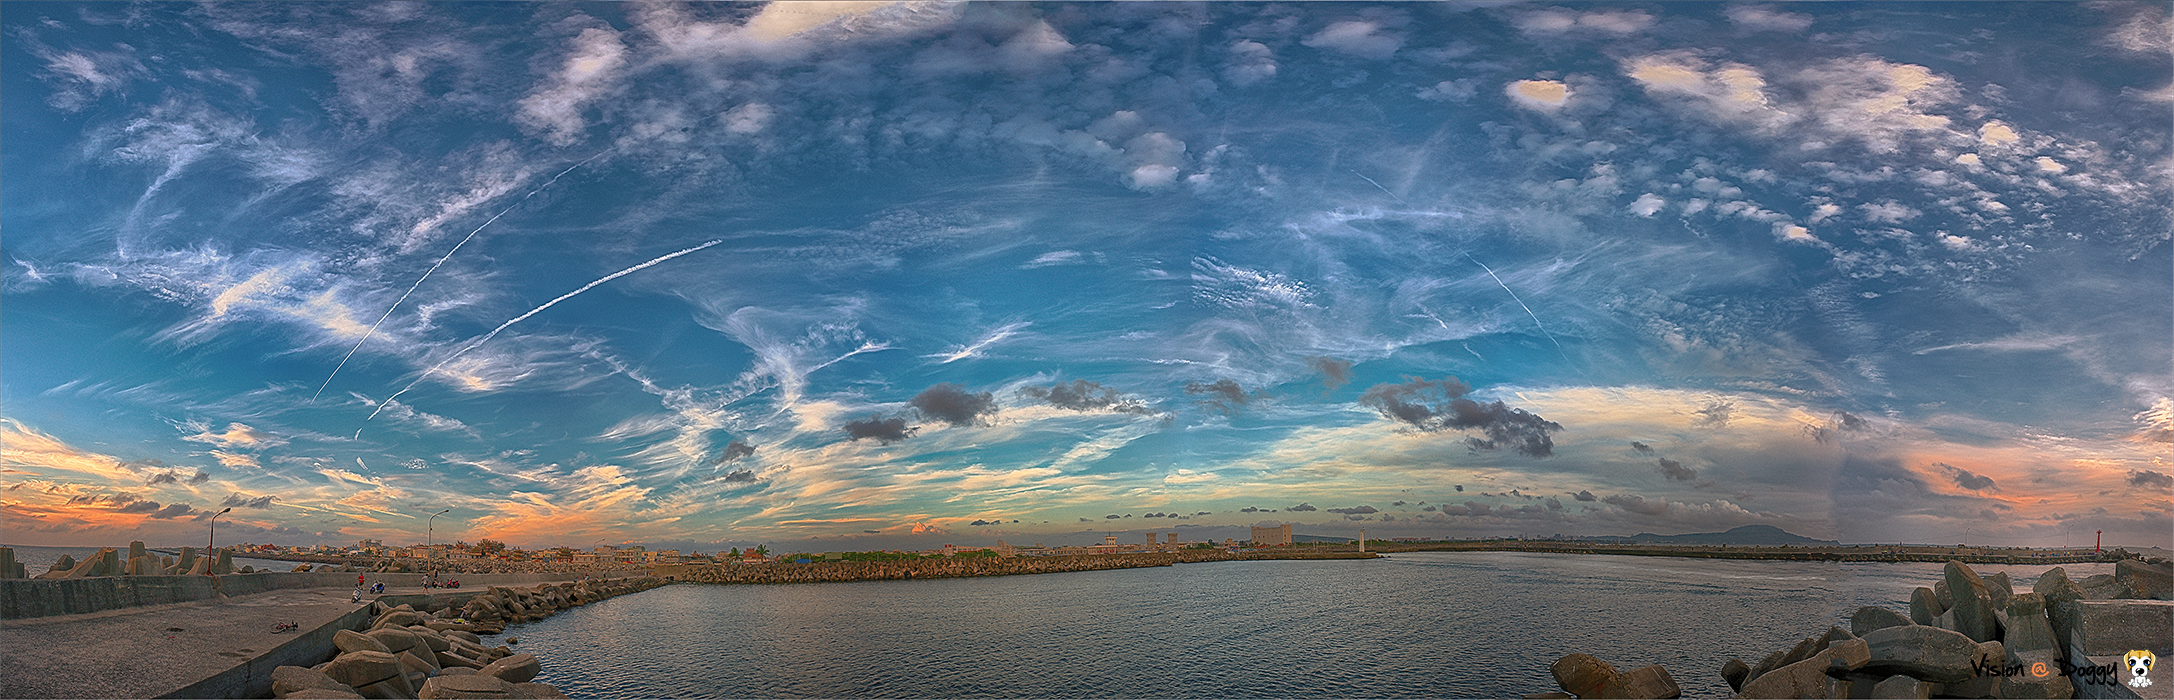 http://gnl.hunternet.com.tw/weider/web/wp-content/gallery/keliao/pic-20180506-01-sunset.png